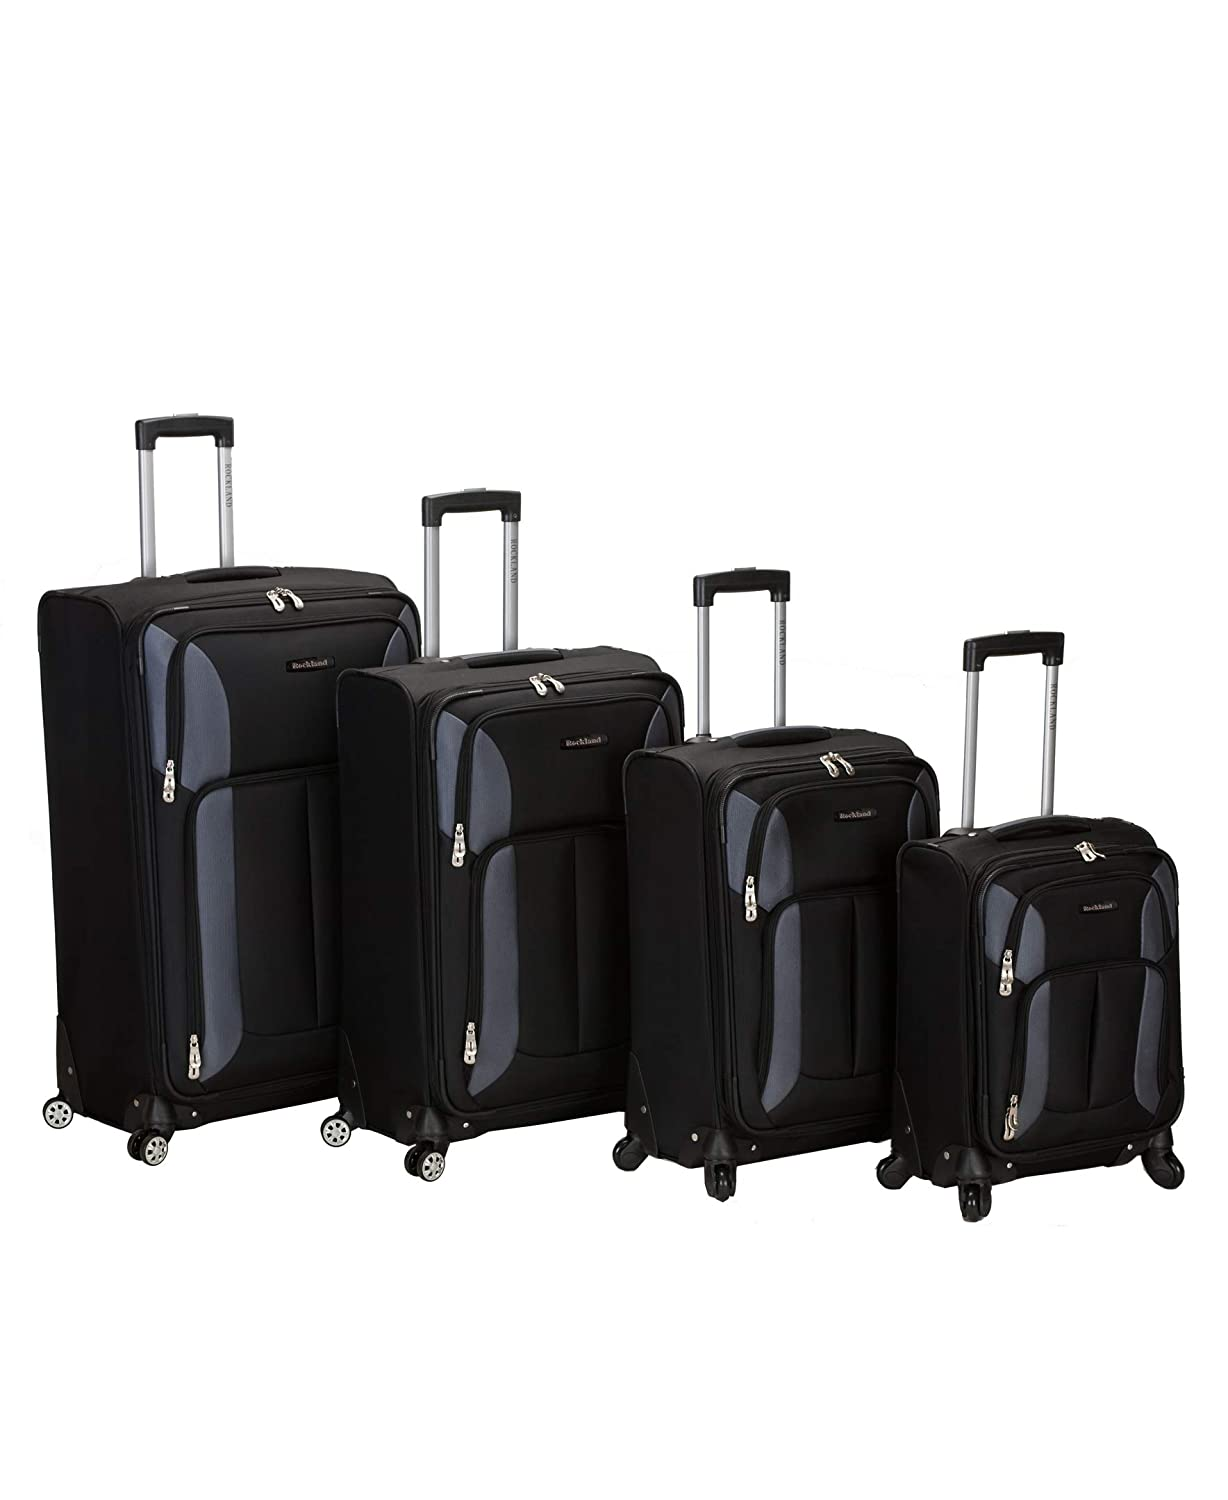 809bcf3f61d9 Rockland Luggage Impact Spinner 4 Piece Luggage Set, Black, One Size